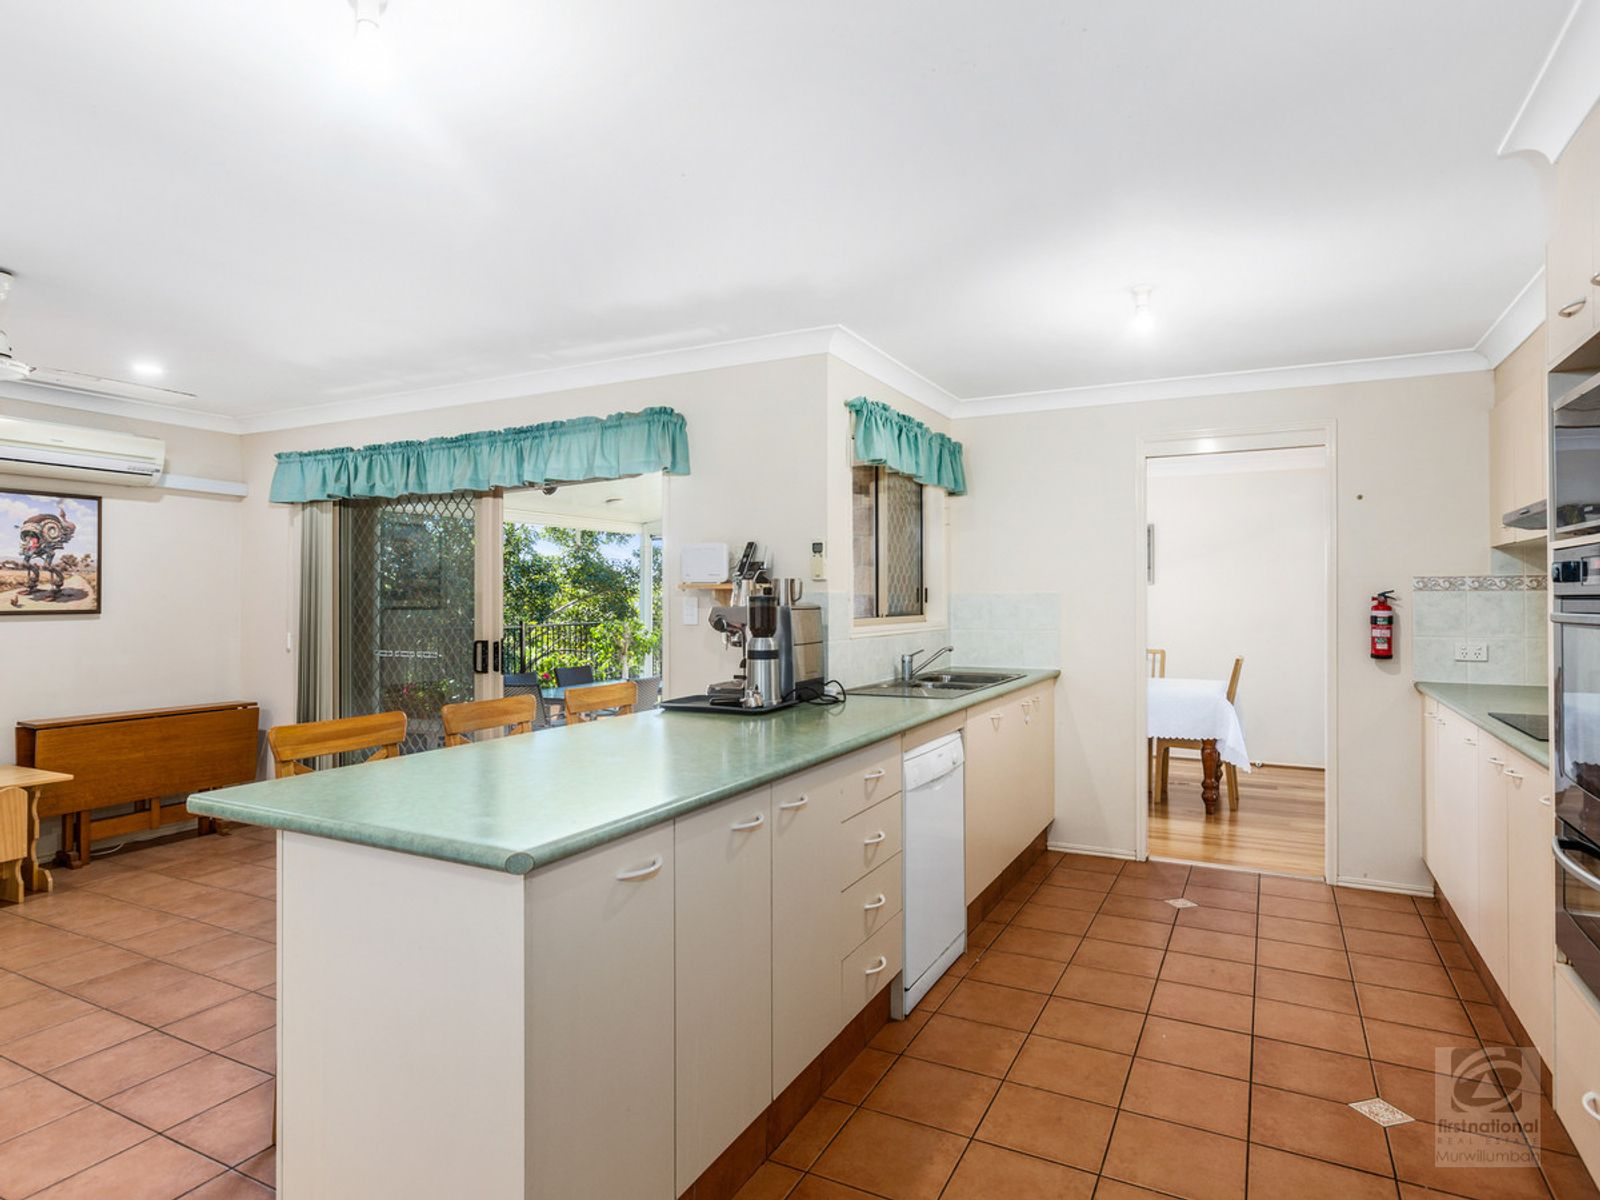 11 The Plateau, Murwillumbah, NSW 2484